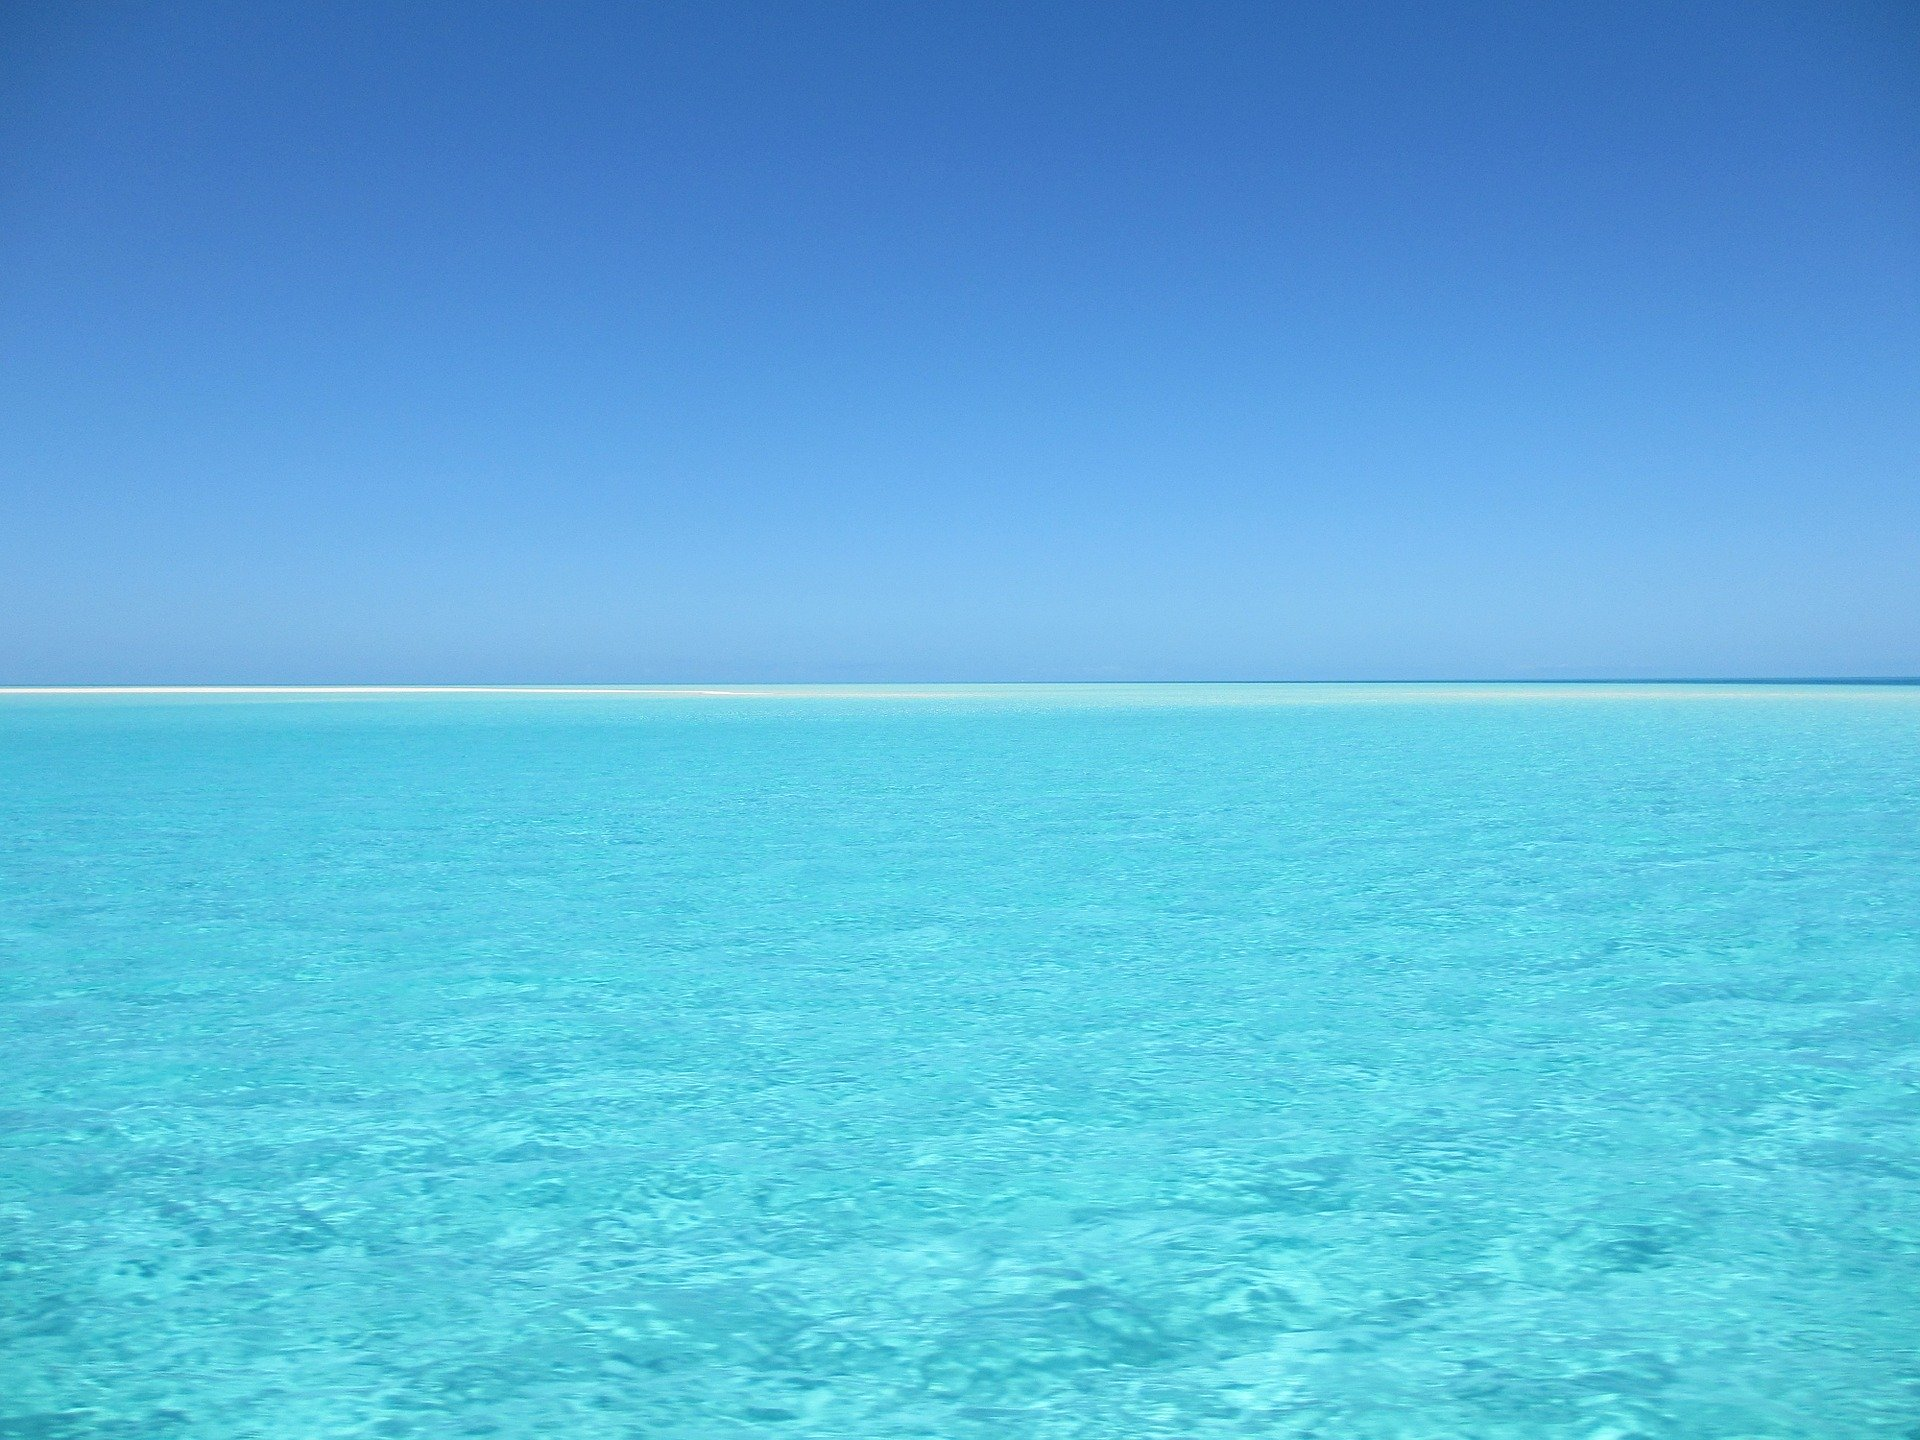 Blue Ocean Strategy: A Roadmap on How to Be the Good Kind of Different